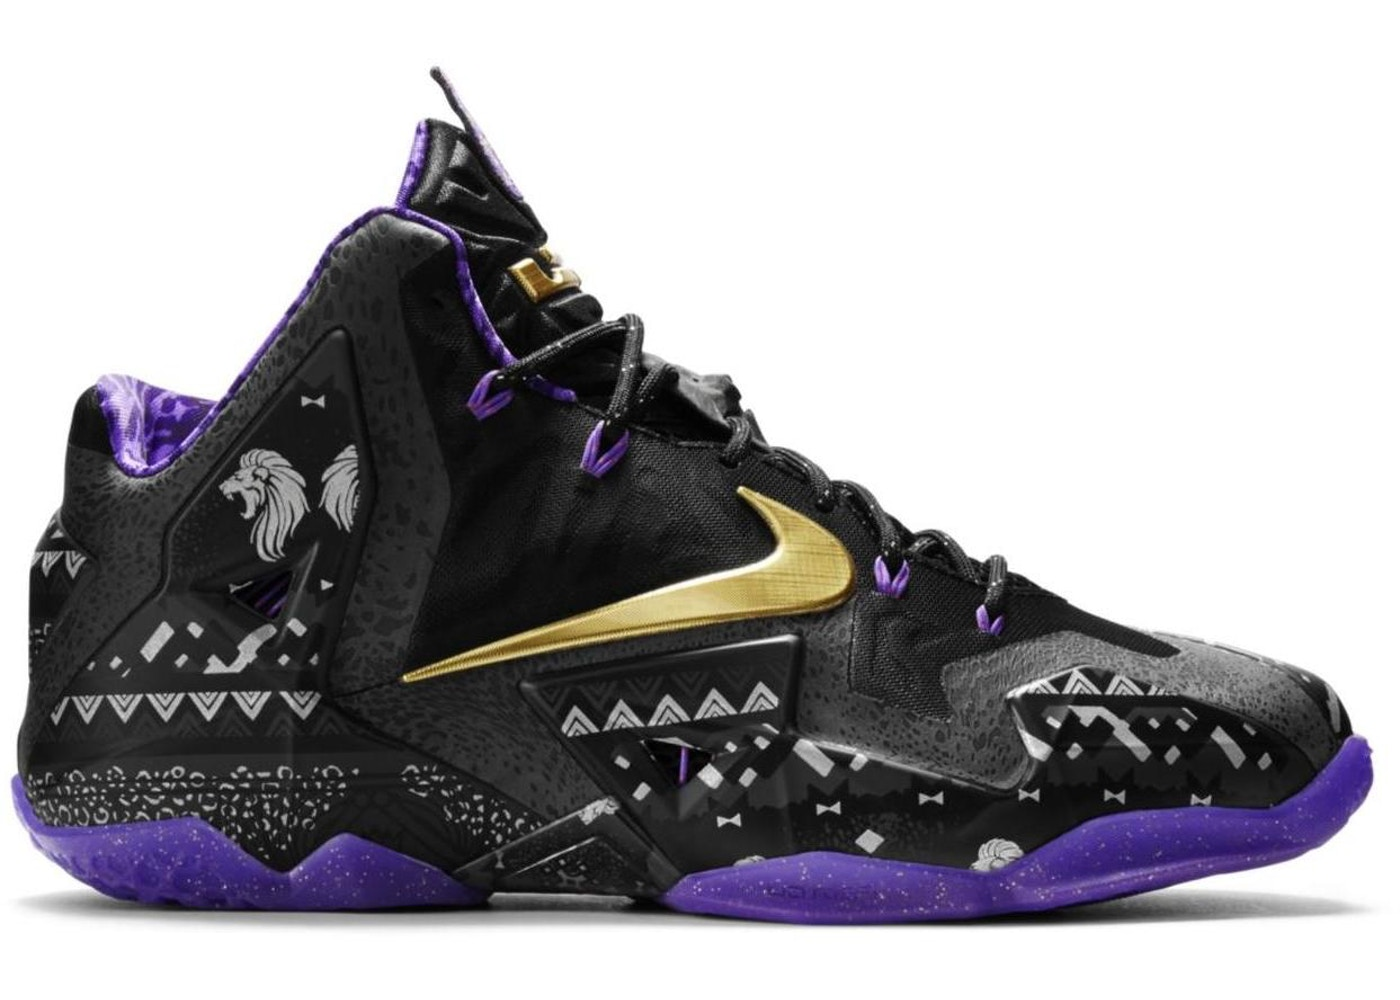 finest selection fb160 f0183 Buy Nike LeBron 11 Shoes & Deadstock Sneakers